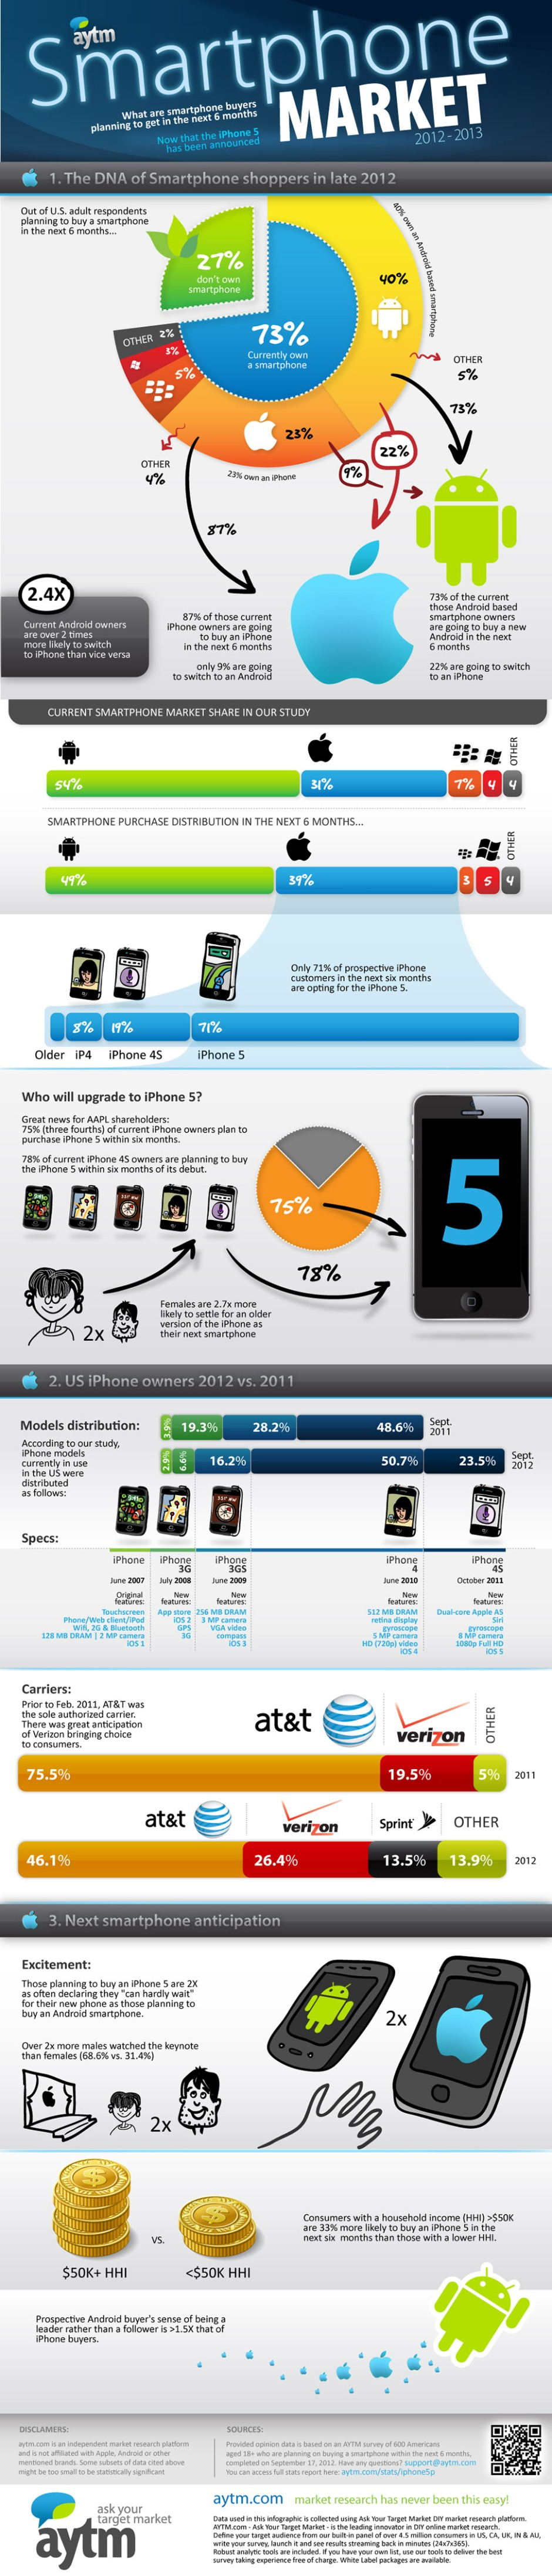 How the iPhone 5 Has Affected the Smartphone Market [INFOGRAPHIC]